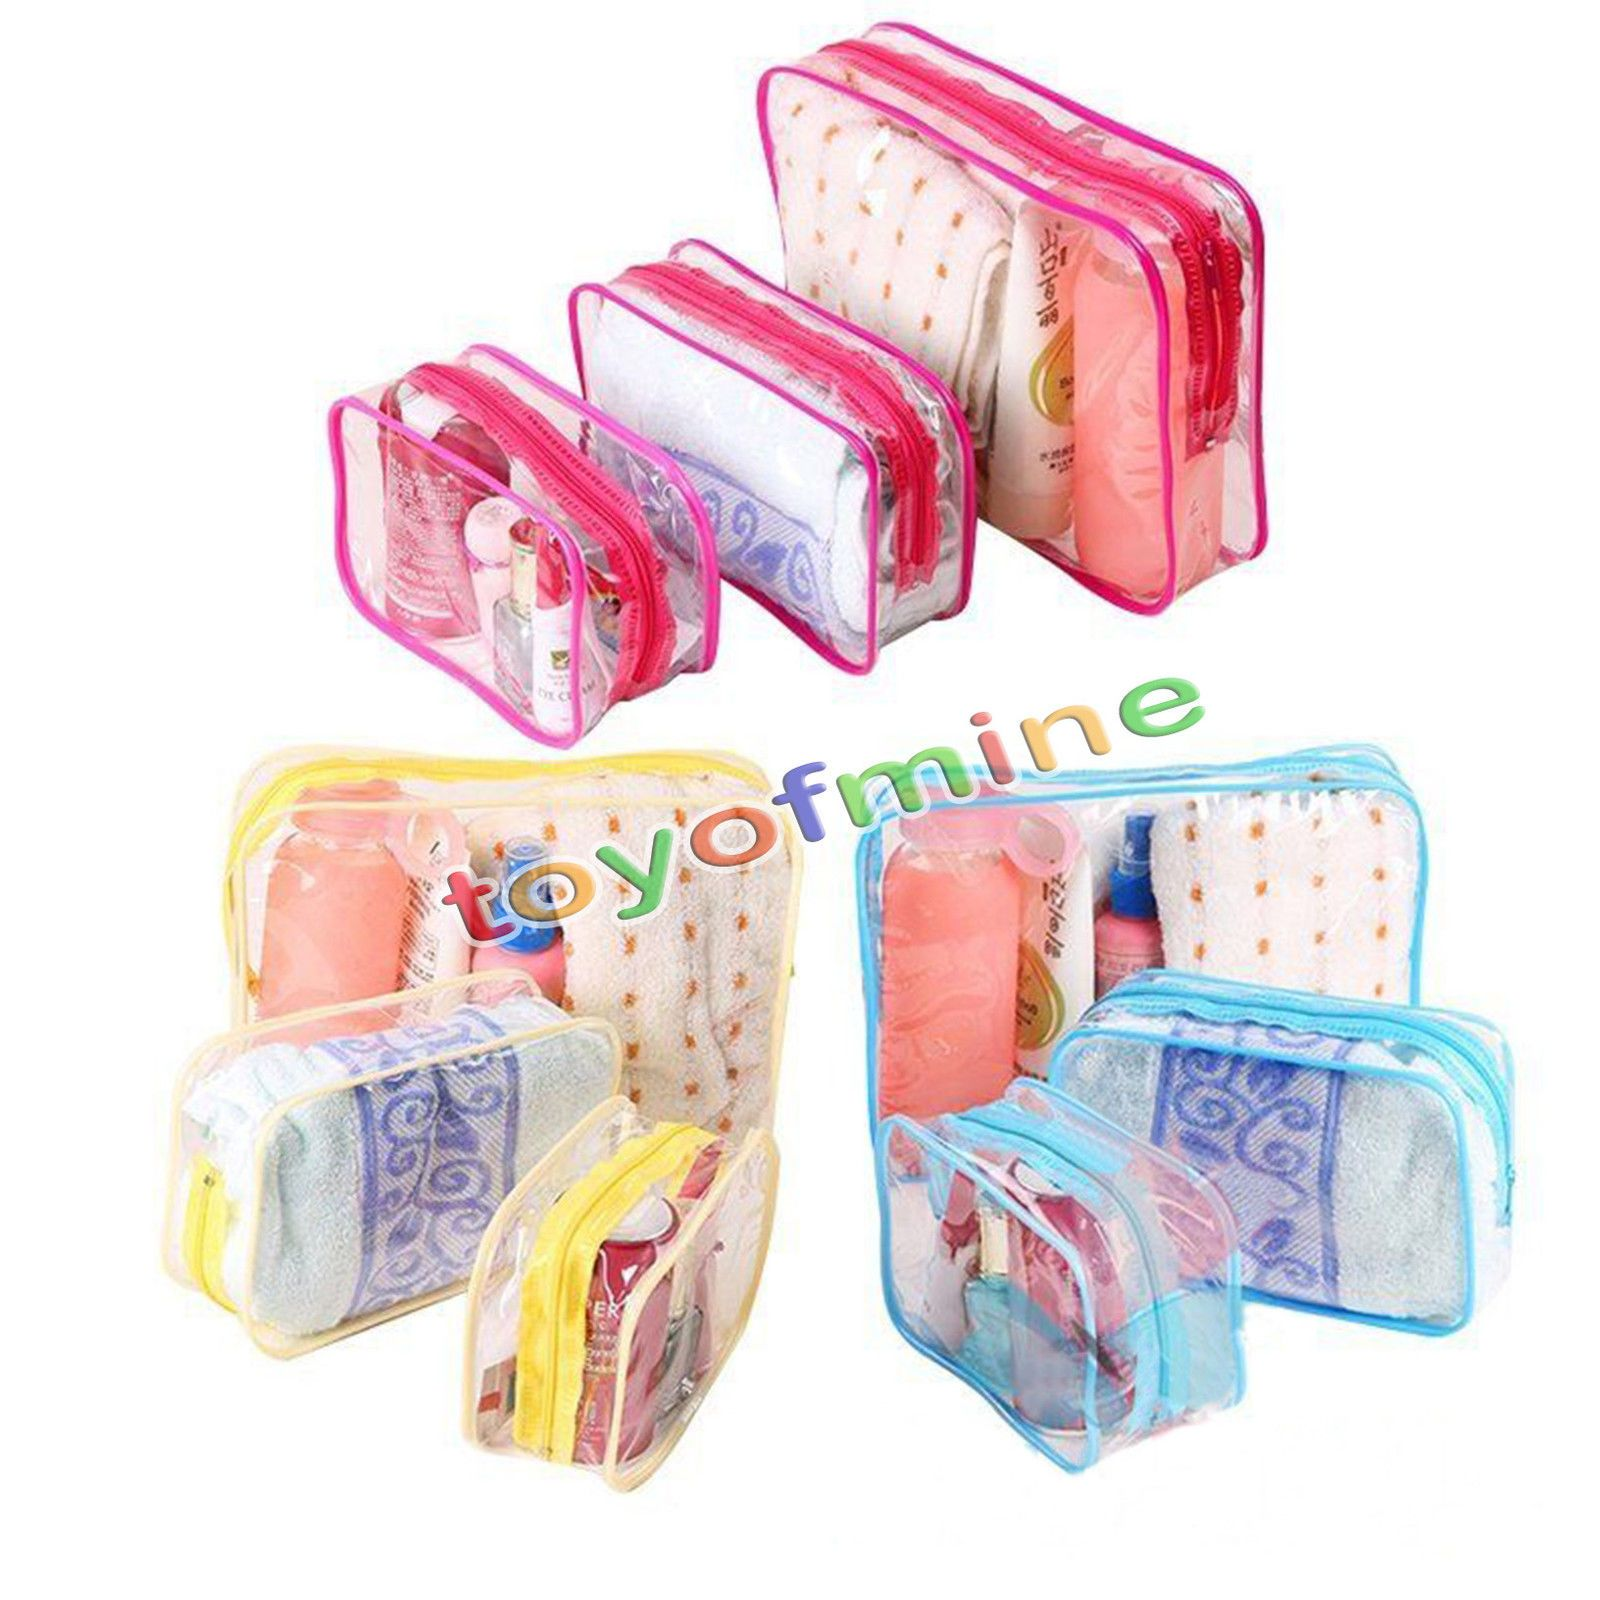 1c49dbaee3 3 Piece Cosmetic Makeup Toiletry Clear Pvc Travel Wash Bag Holder Pouch Set  Kit